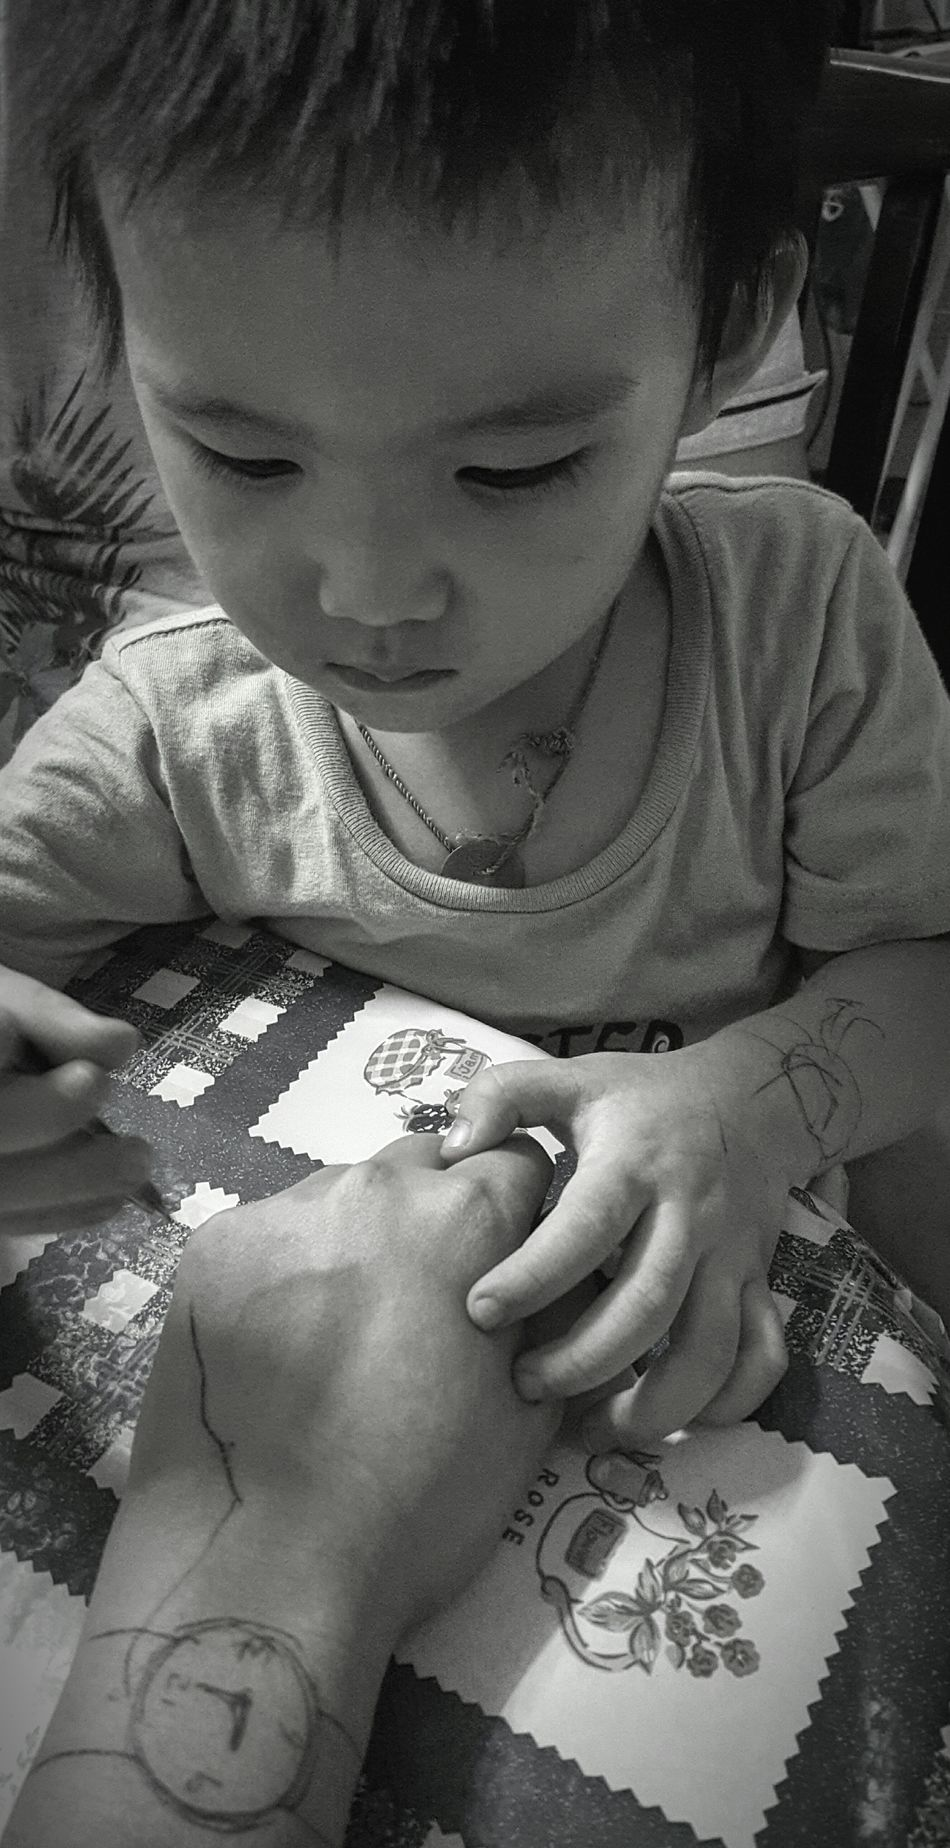 在手上作画 Drawing On Hands Nephew Love Boy Nephew  Drawing One Person Childhood Human Body Part Looking Down Children Only Real People Human Hand Mobile Photography Personal Perspective The Week Of Eyeem Check This Out Fresh On Eyeem  Showcase March EyeEm Of The Week Hello World My Point Of View Black And White Photography Monochrome